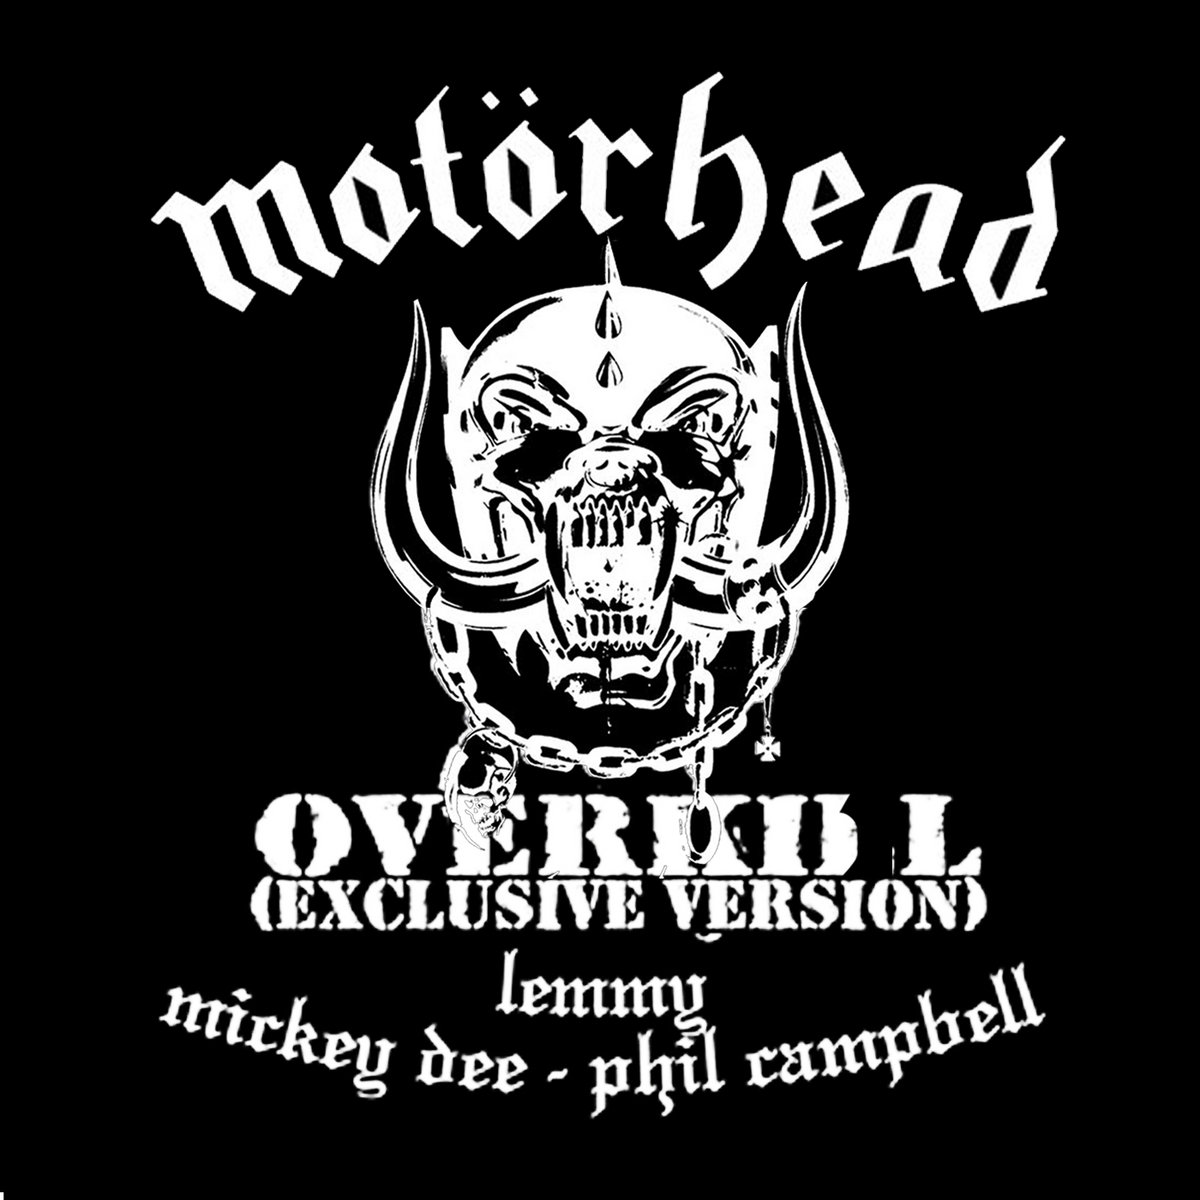 Download motorhead discography free